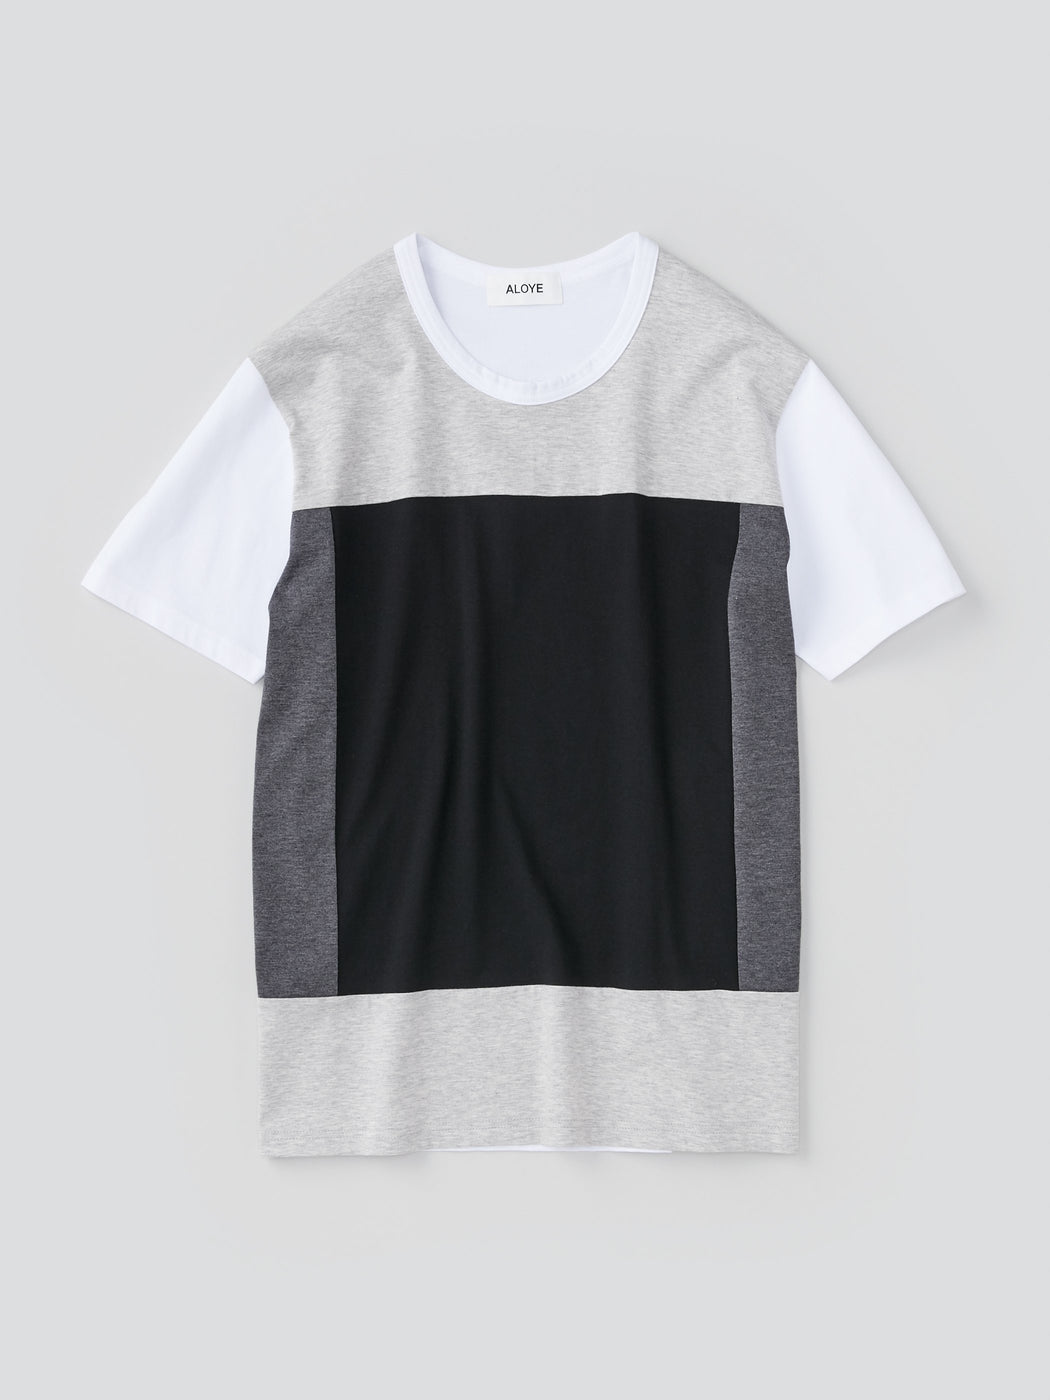 ALOYE Color Blocks Men's Short Sleeve T-shirt Heather Gray and Black